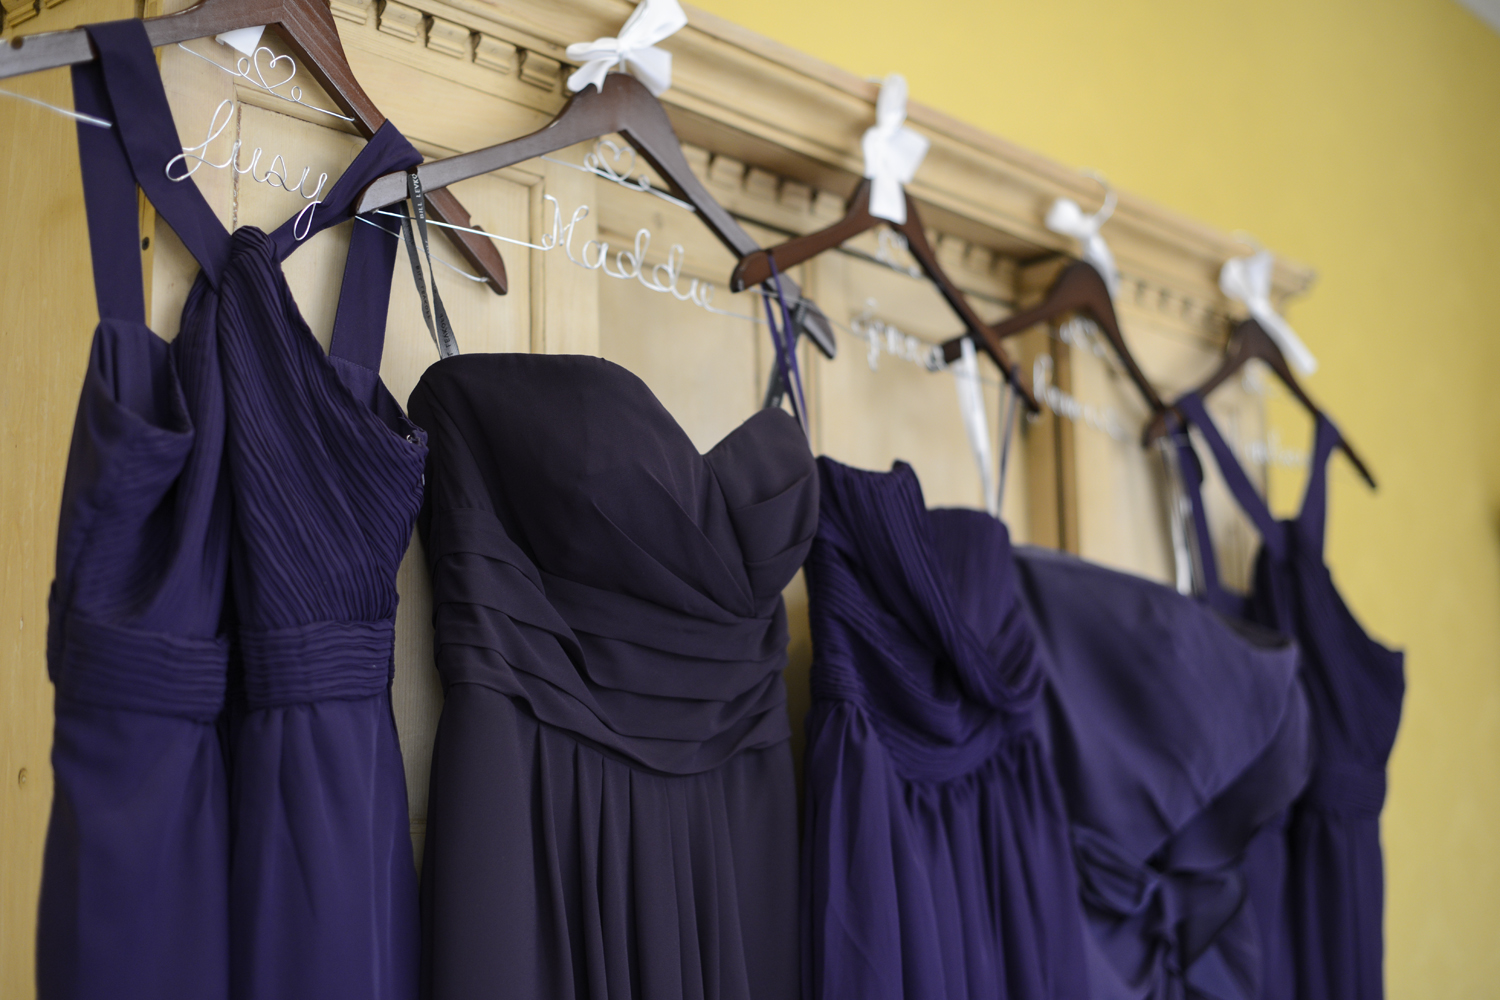 Royal purple bridesmaids dresses | Maria Grace Photography